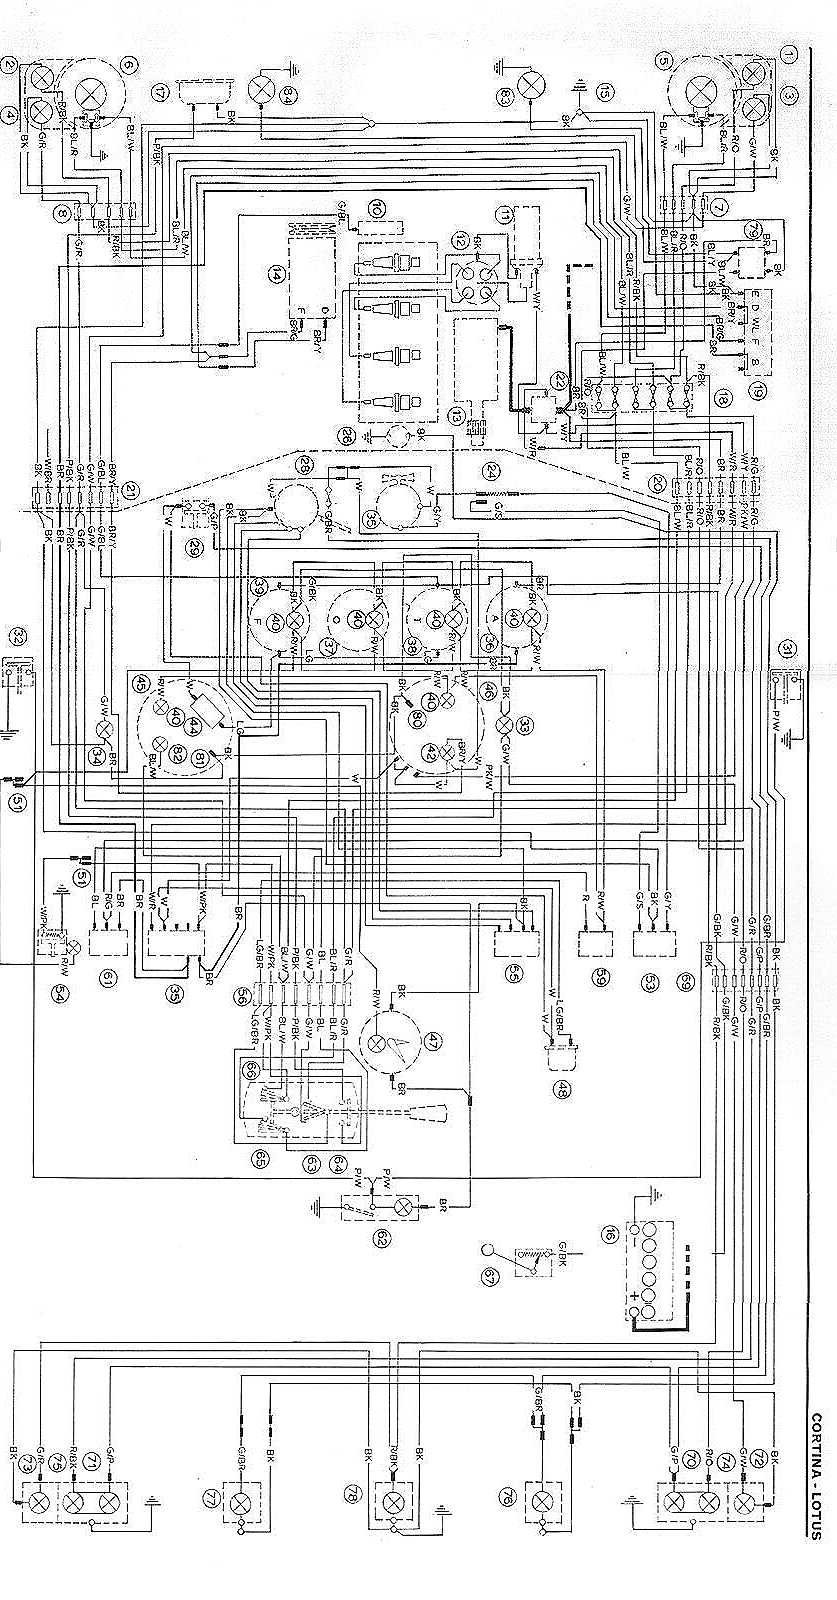 medium resolution of ford escort mk2 wiring diagram download free ford galaxy wiring diagram download efcaviation